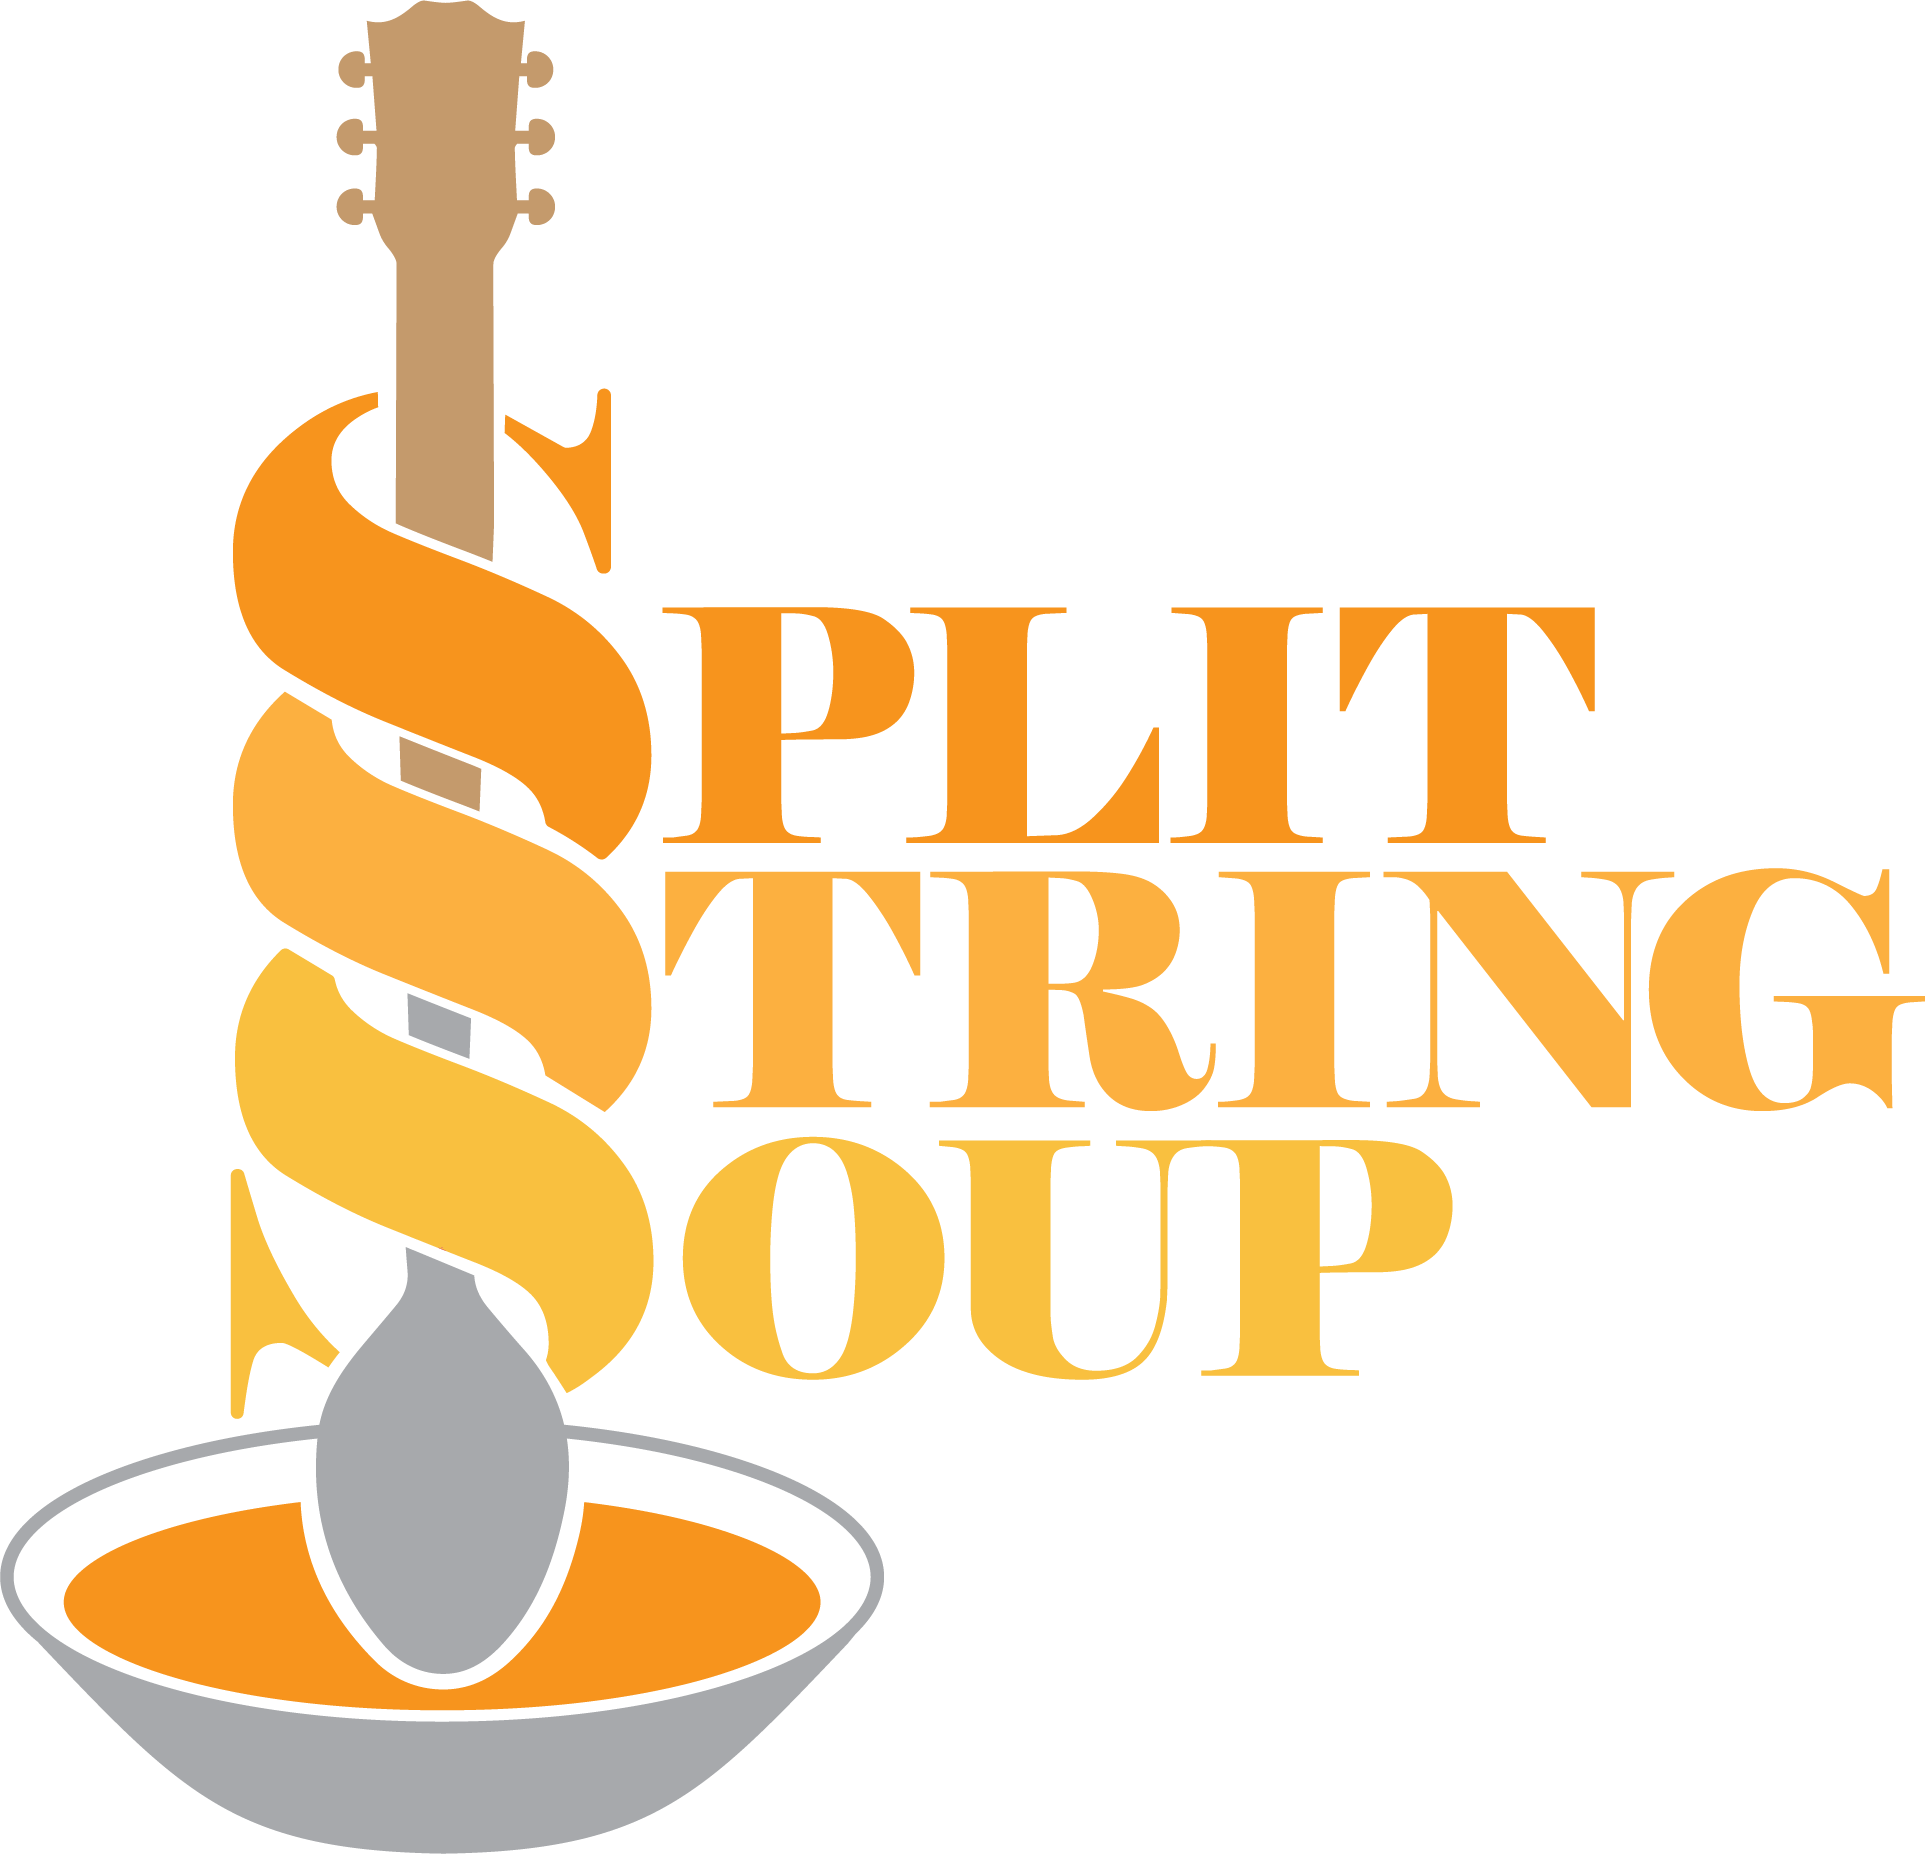 Split String Soup logo